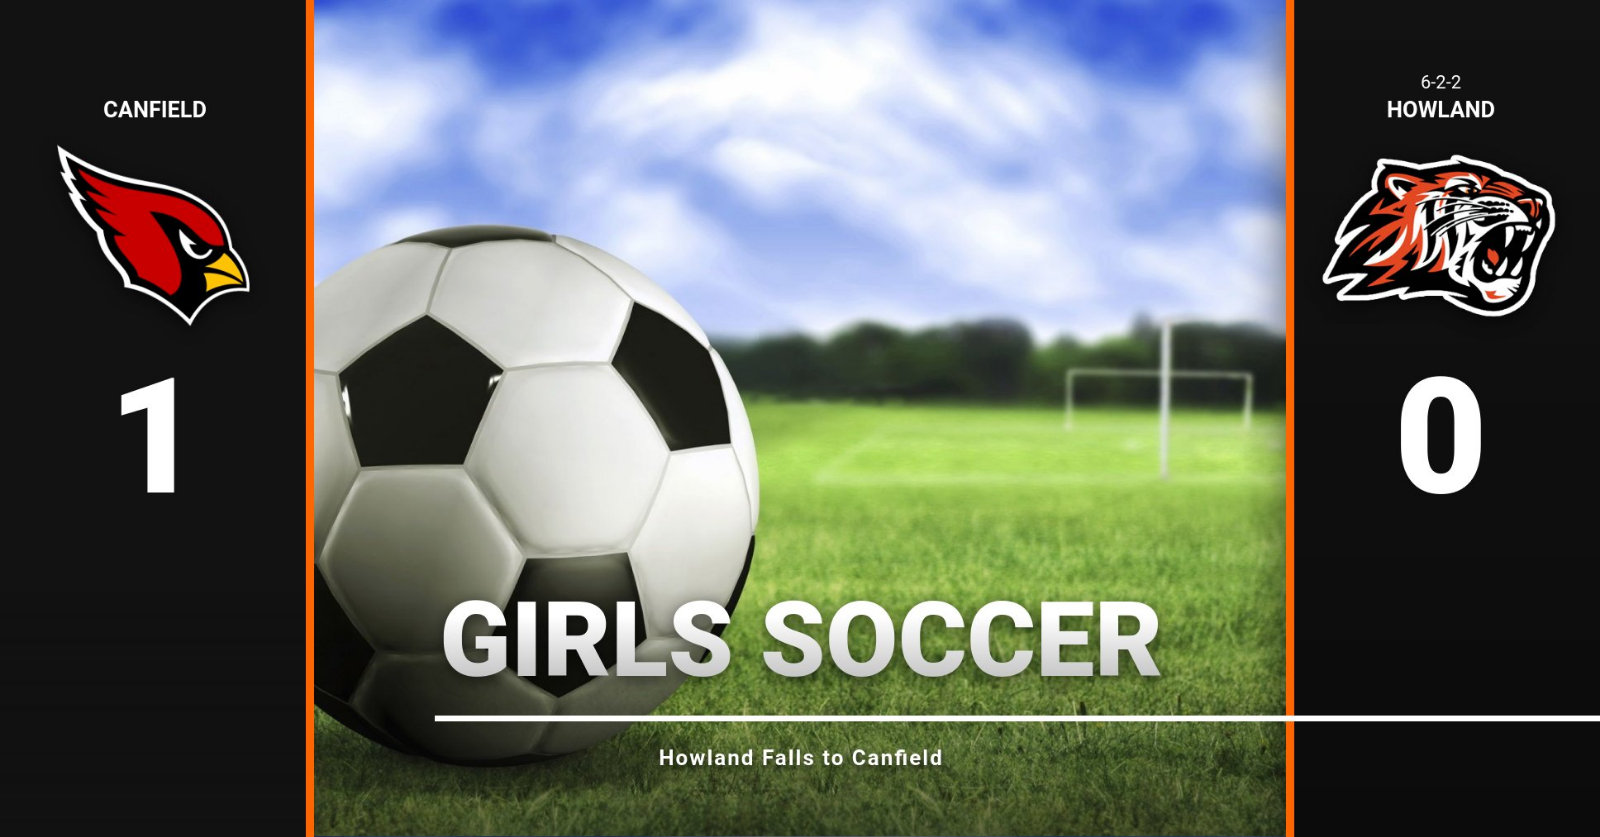 Girls Soccer Teams Fall to Canfield